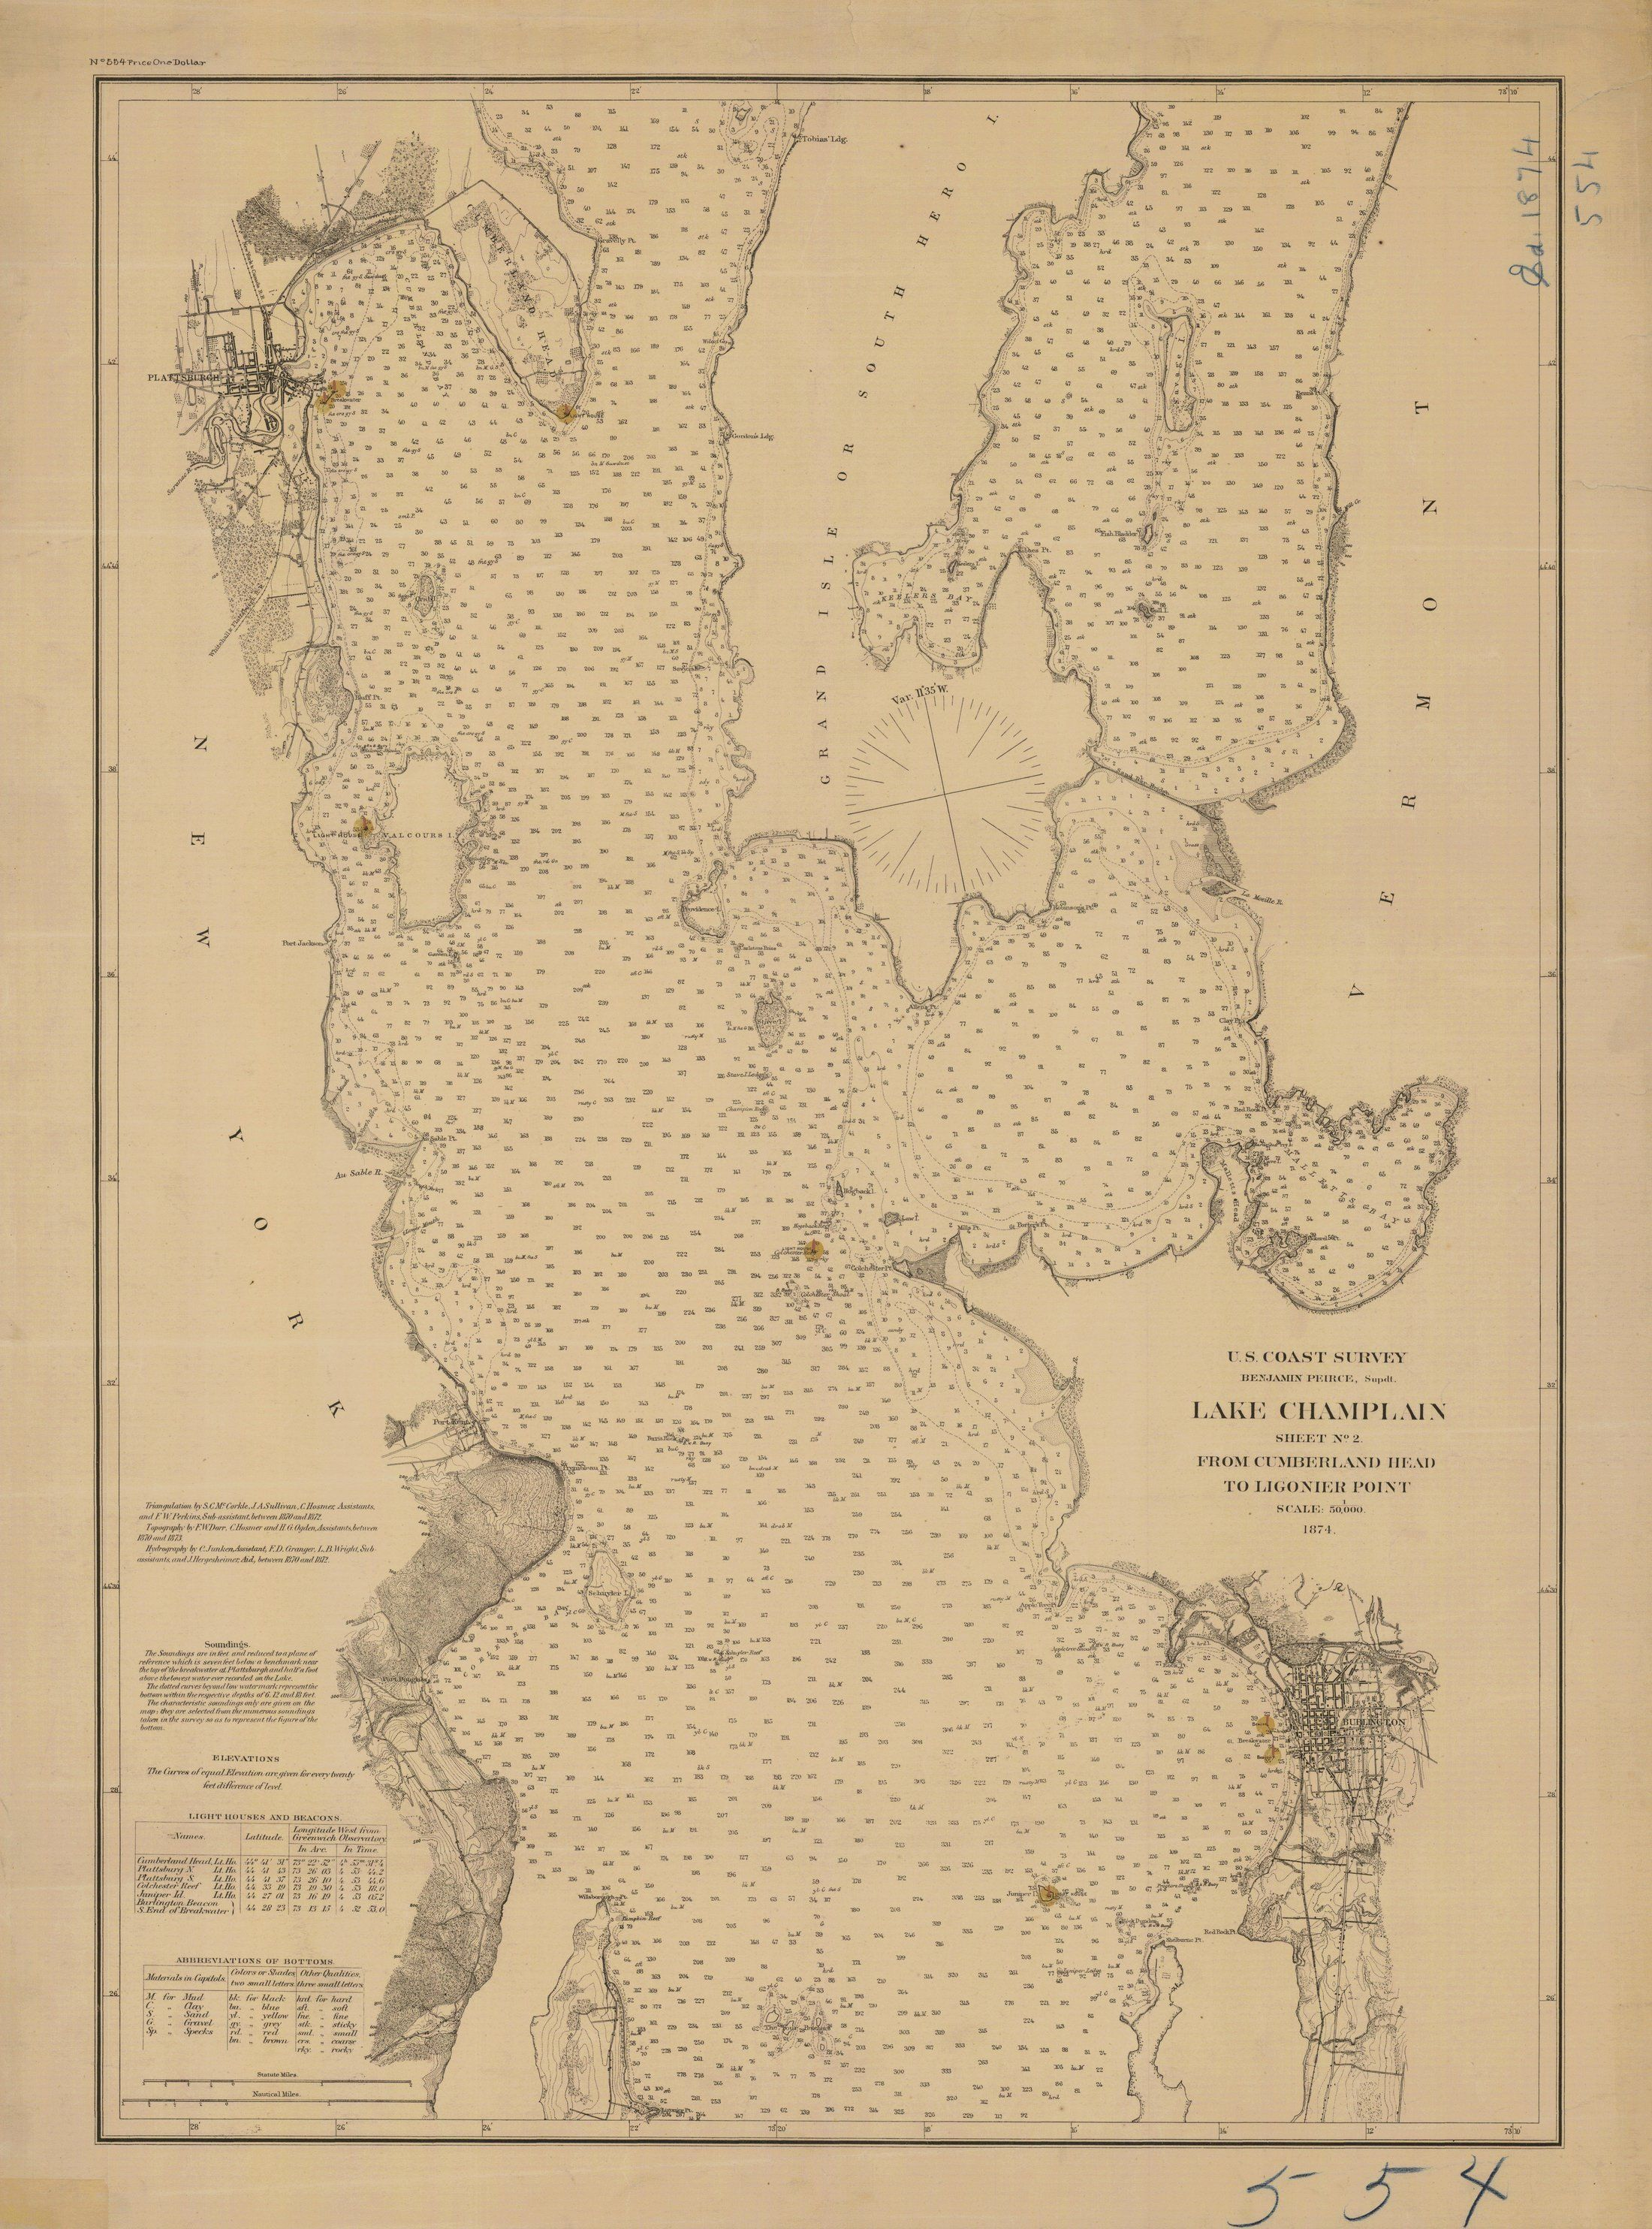 18 X 24 Inch 1874 Vermont Old Nautical Map Drawing Chart Of Lake - Us-coast-and-geodetic-survey-maps